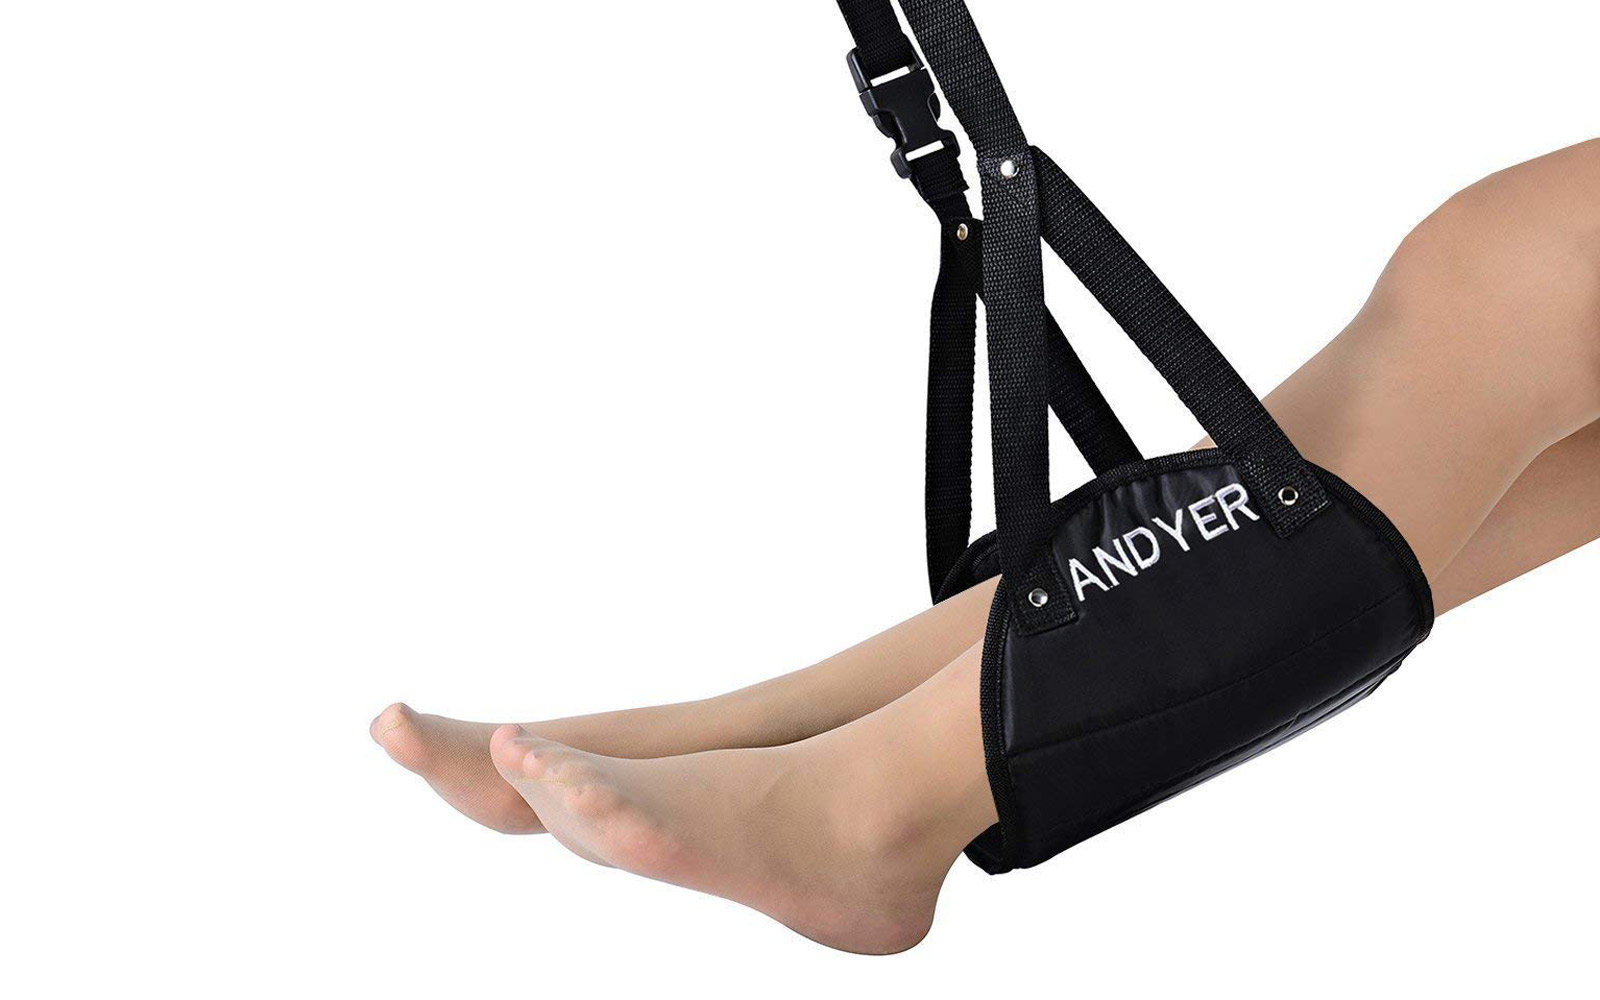 16. Andyer Portable Travel Footrest